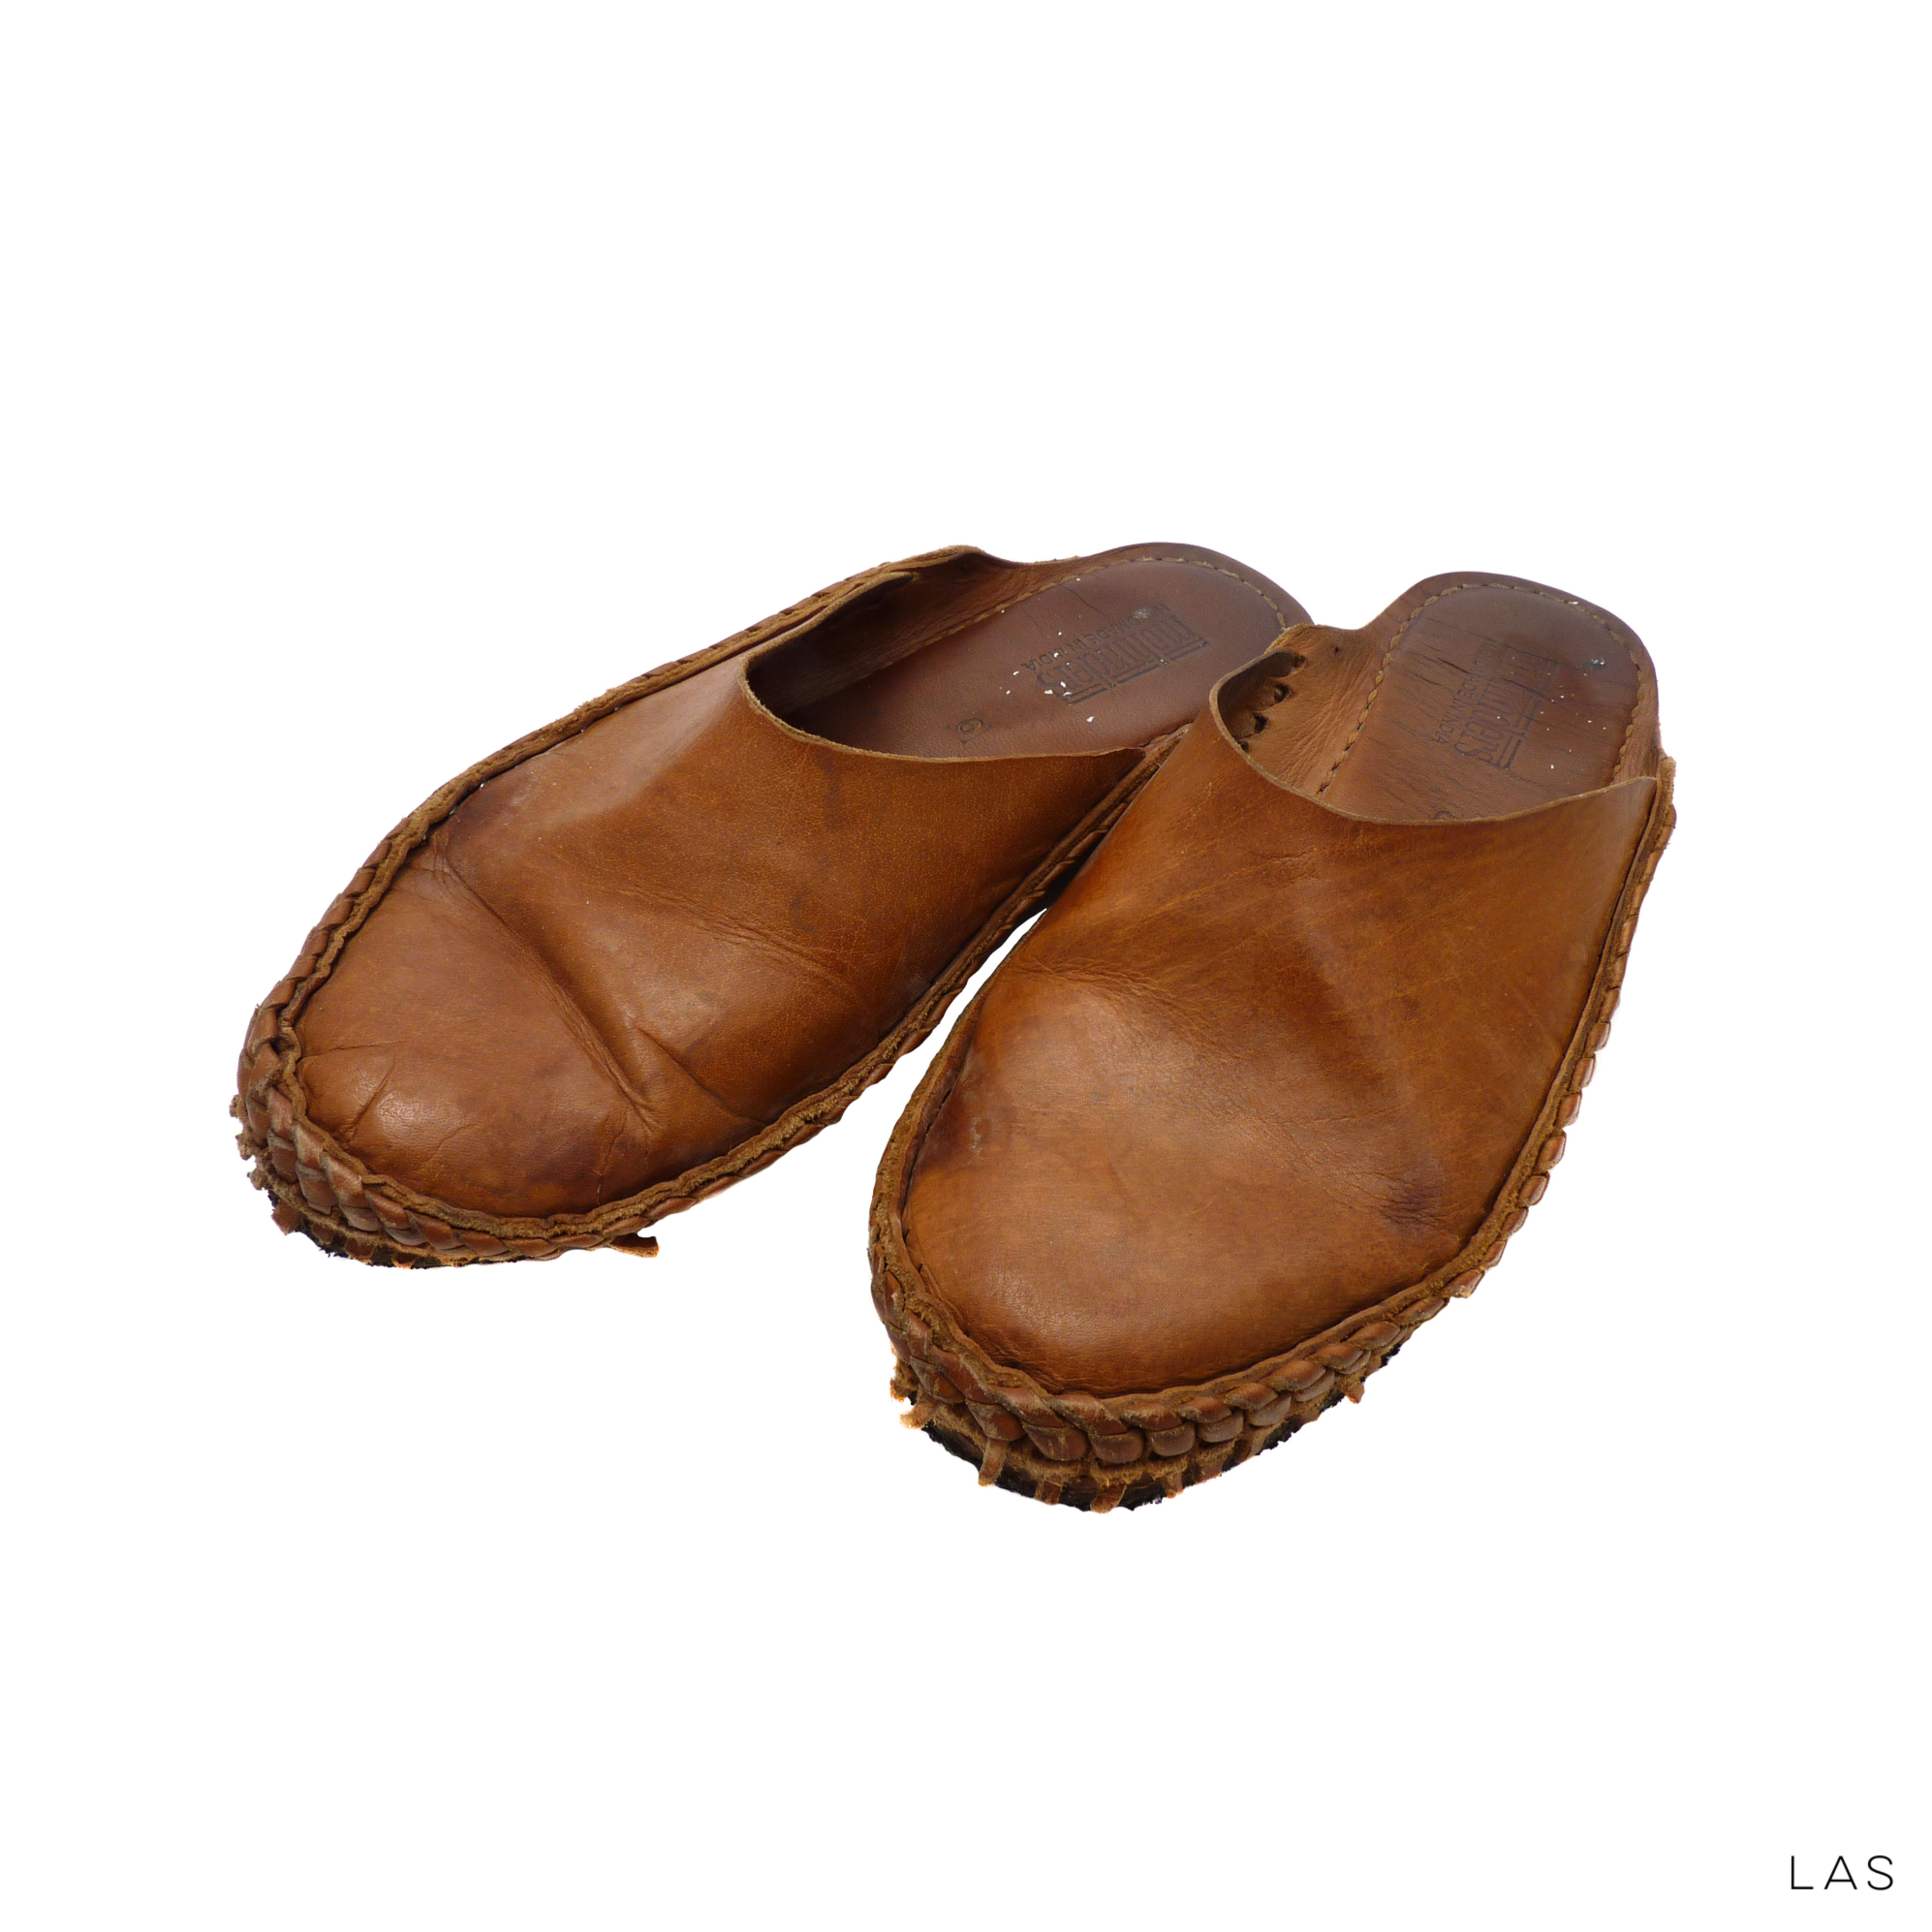 THE 100 DAY PROJECT PROMPT #97 SLIPPERS